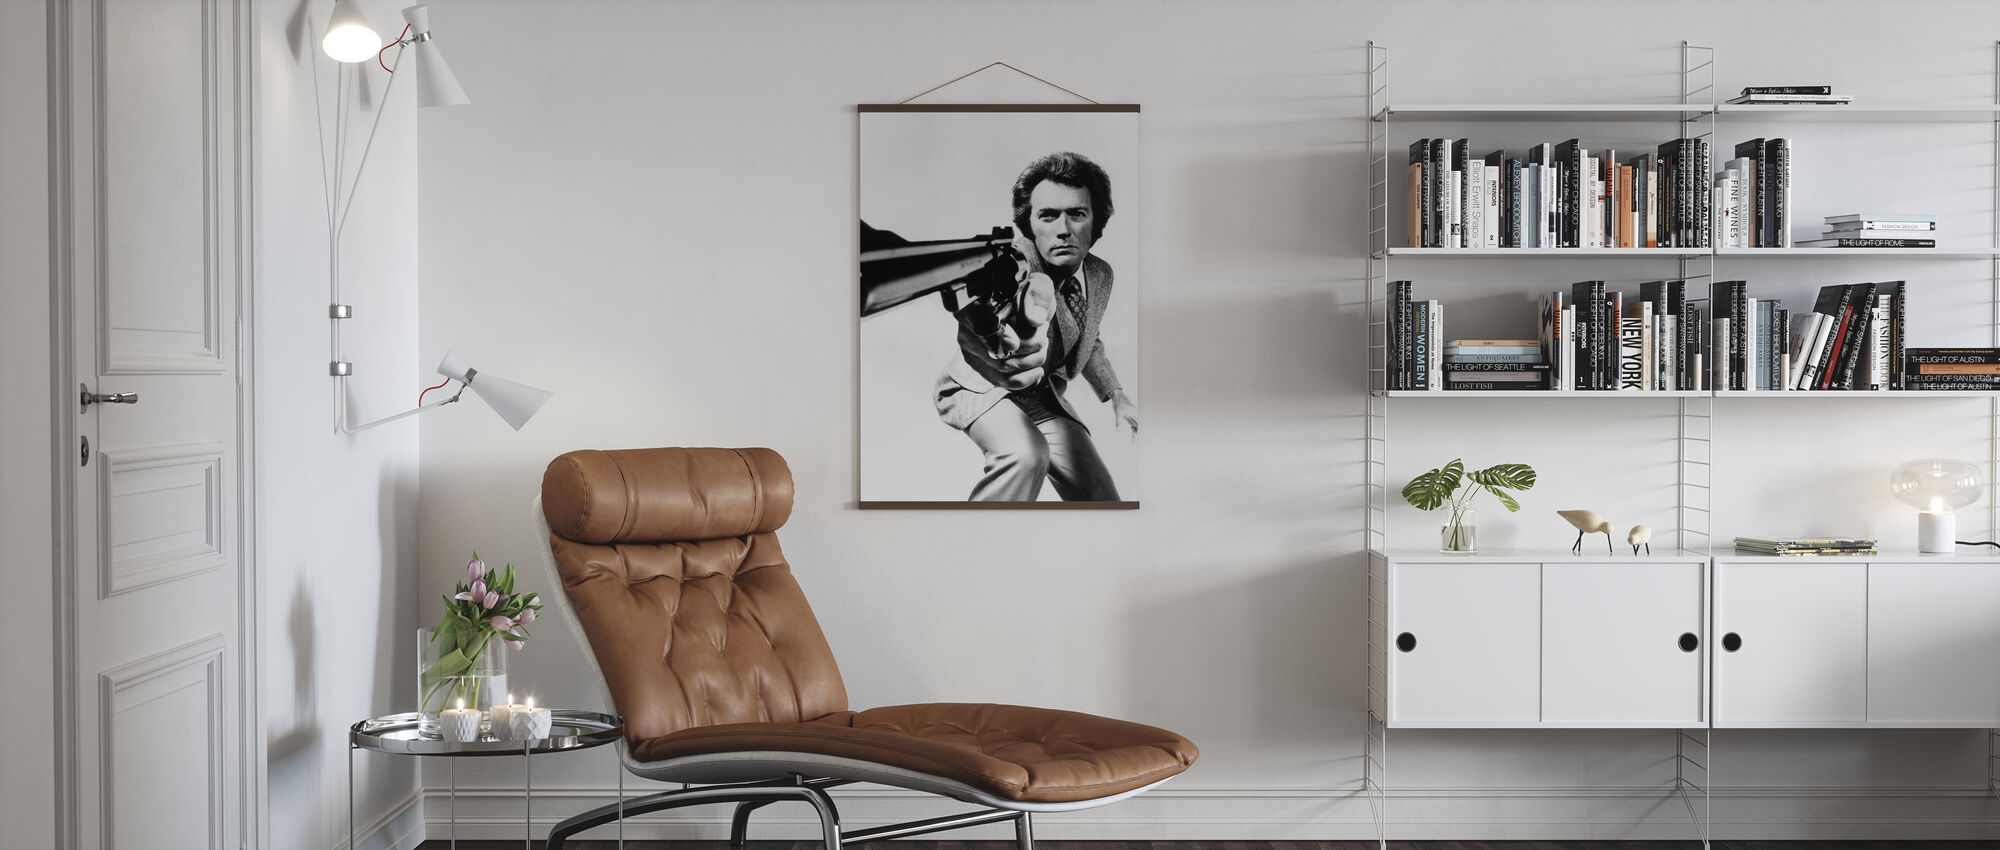 Clint Eastwood in Magnum Force - Poster - Living Room